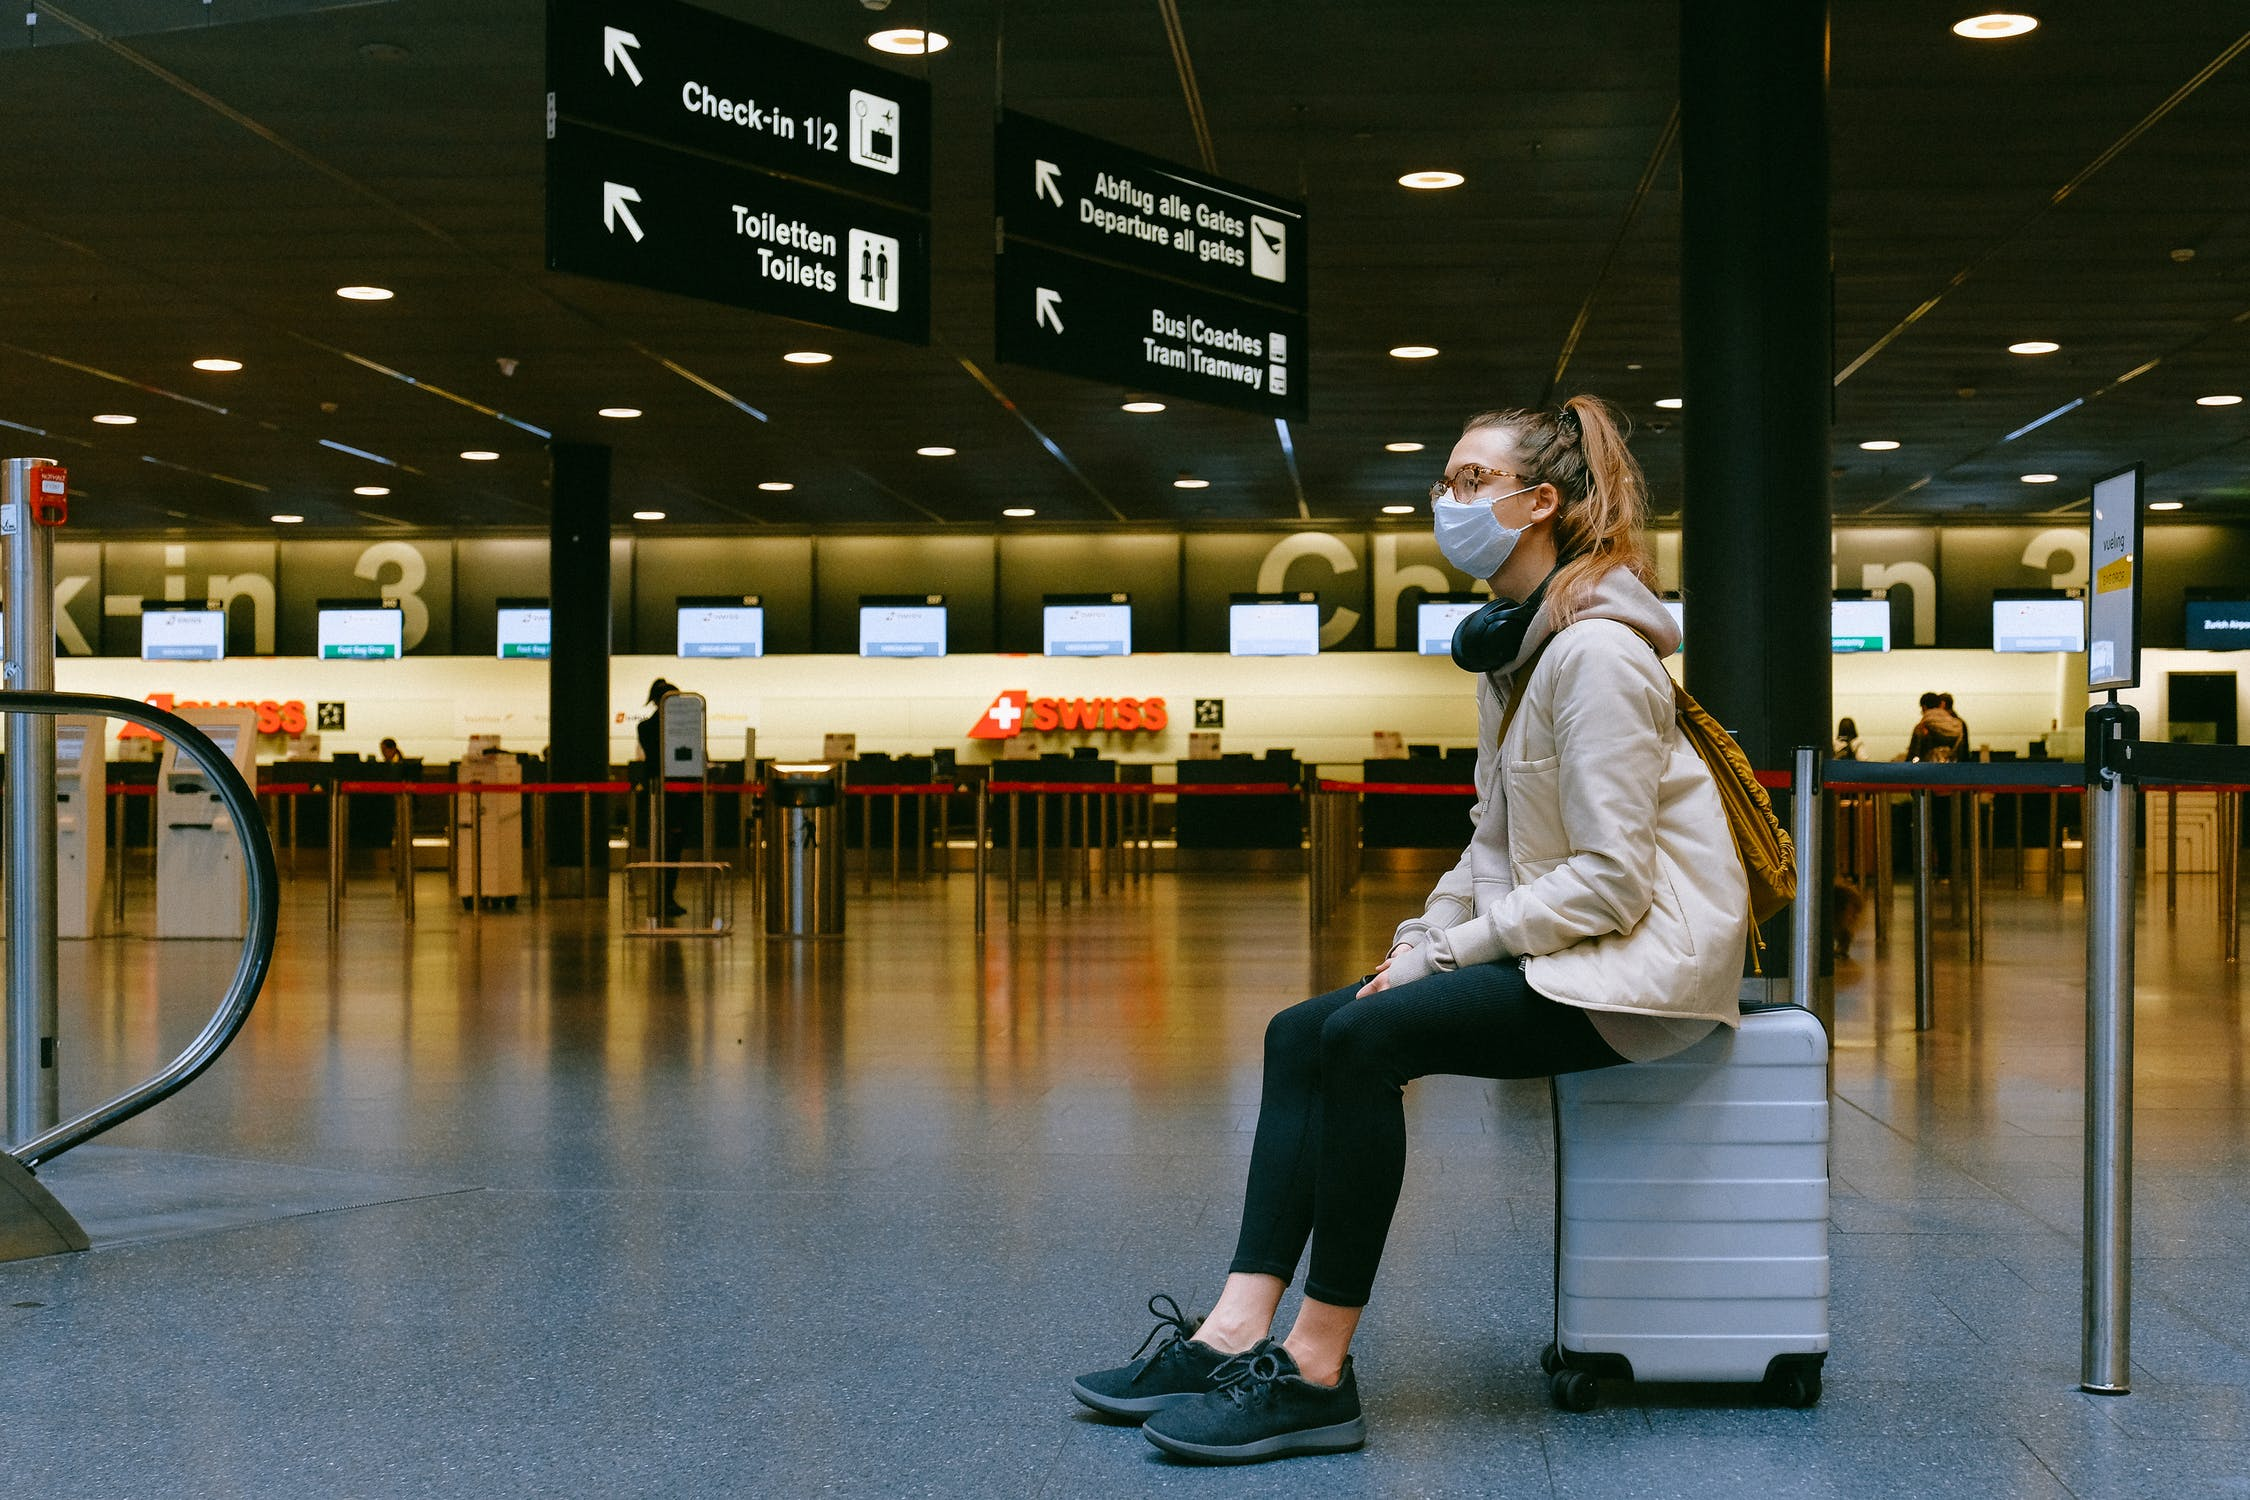 person wearing a mask sitting on a suitcase in an airport